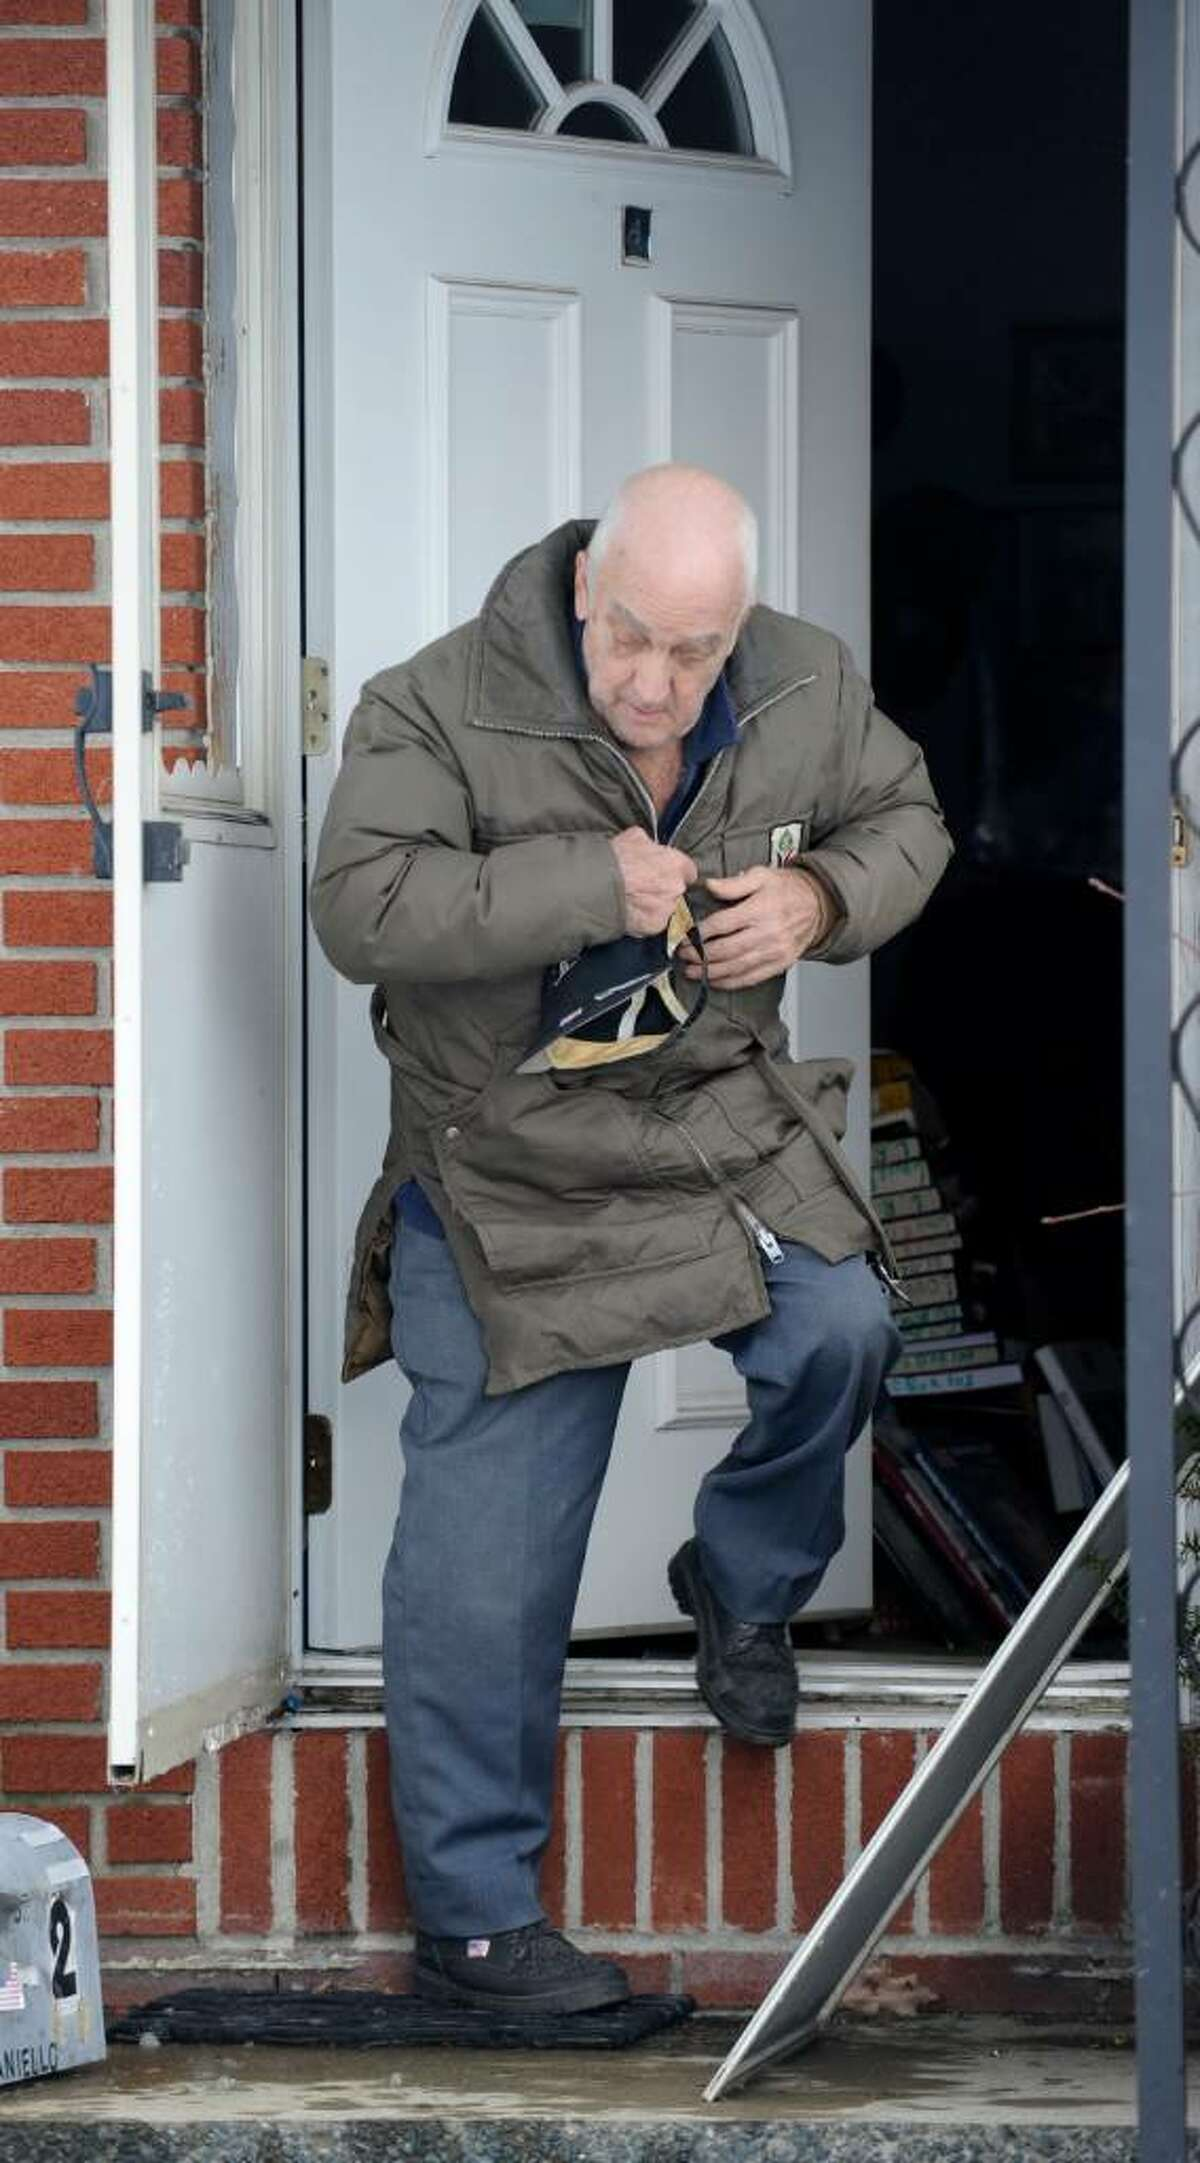 Louis Pisaniello 82, an Alzheimers patient leaves his home at 20 Industrial Park Road in Troy, New York after some urging after the City Marshall called for his eviction December 10, 2009. (Skip Dickstein / Times Union)